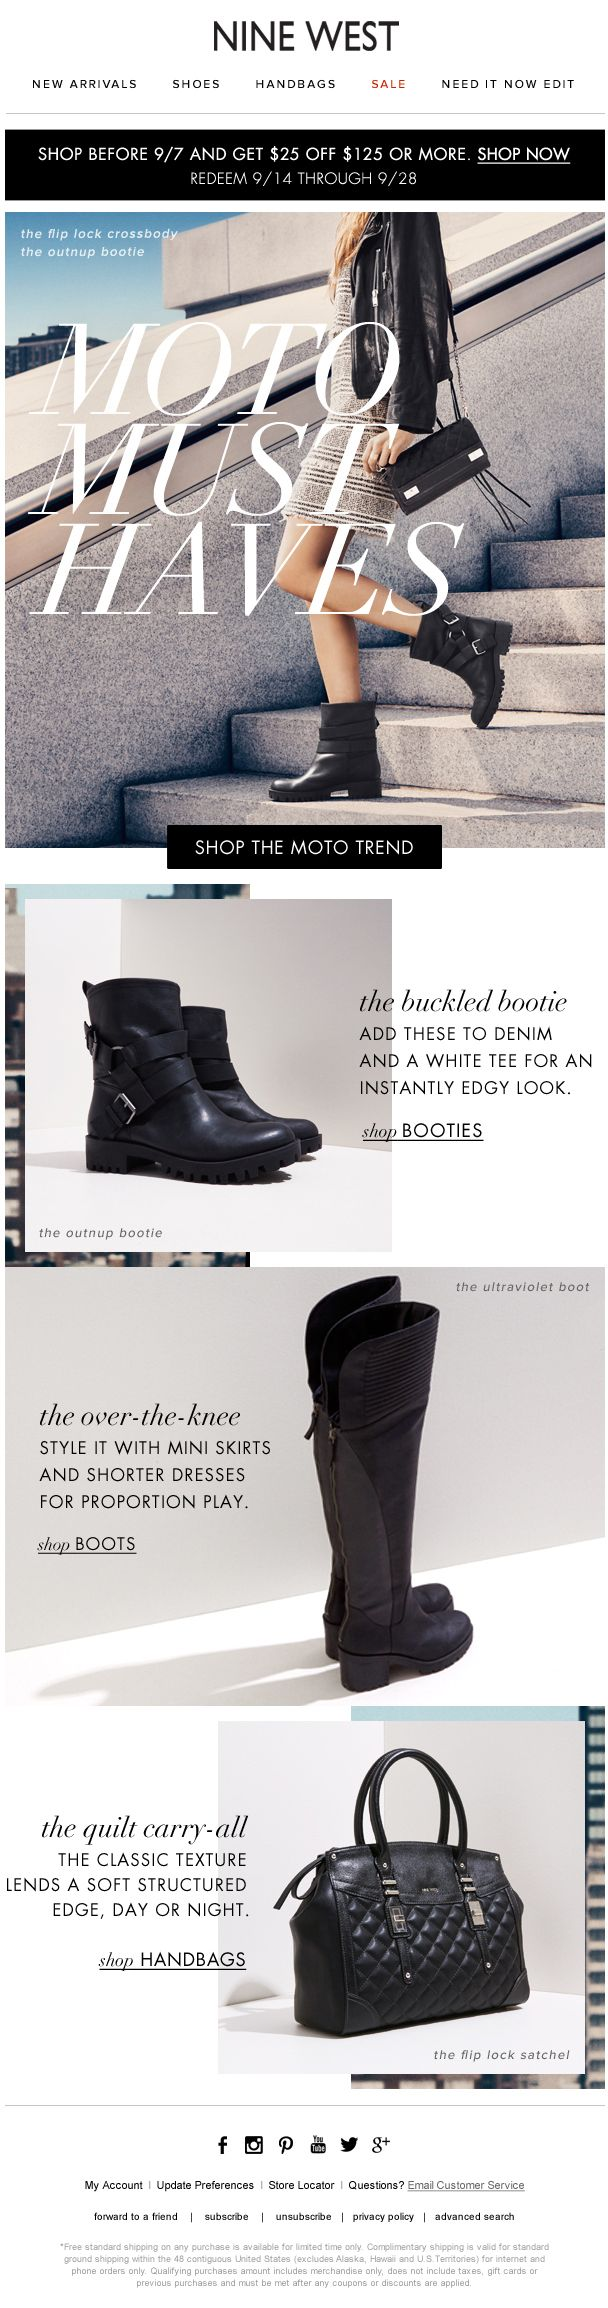 #ninewest #mosborne #email #layout #shoes #fall